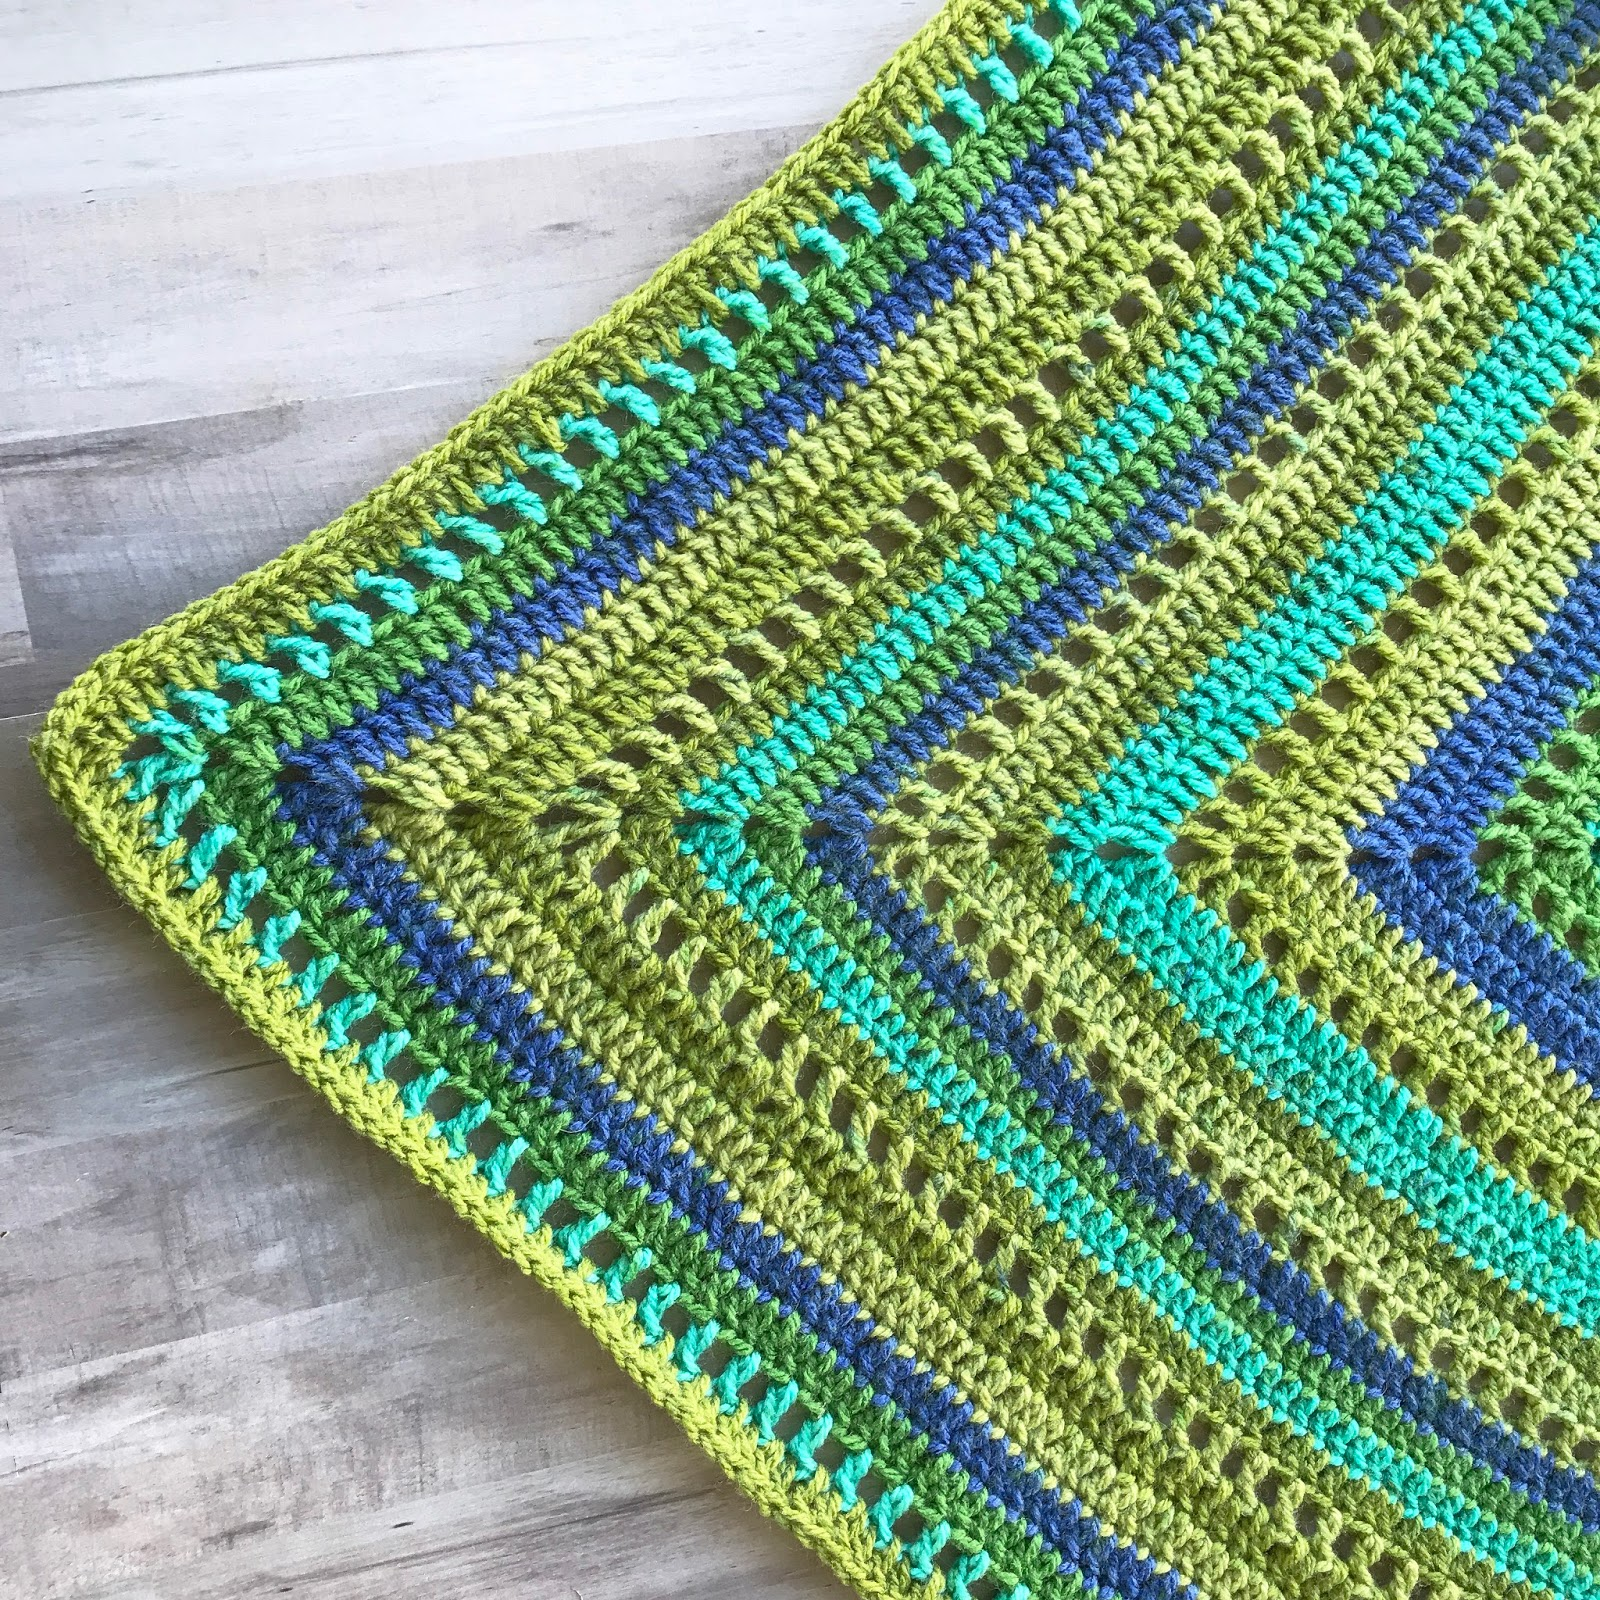 Granny Filet Square Afghan Crochet Pattern - Maria\'s Blue Crayon